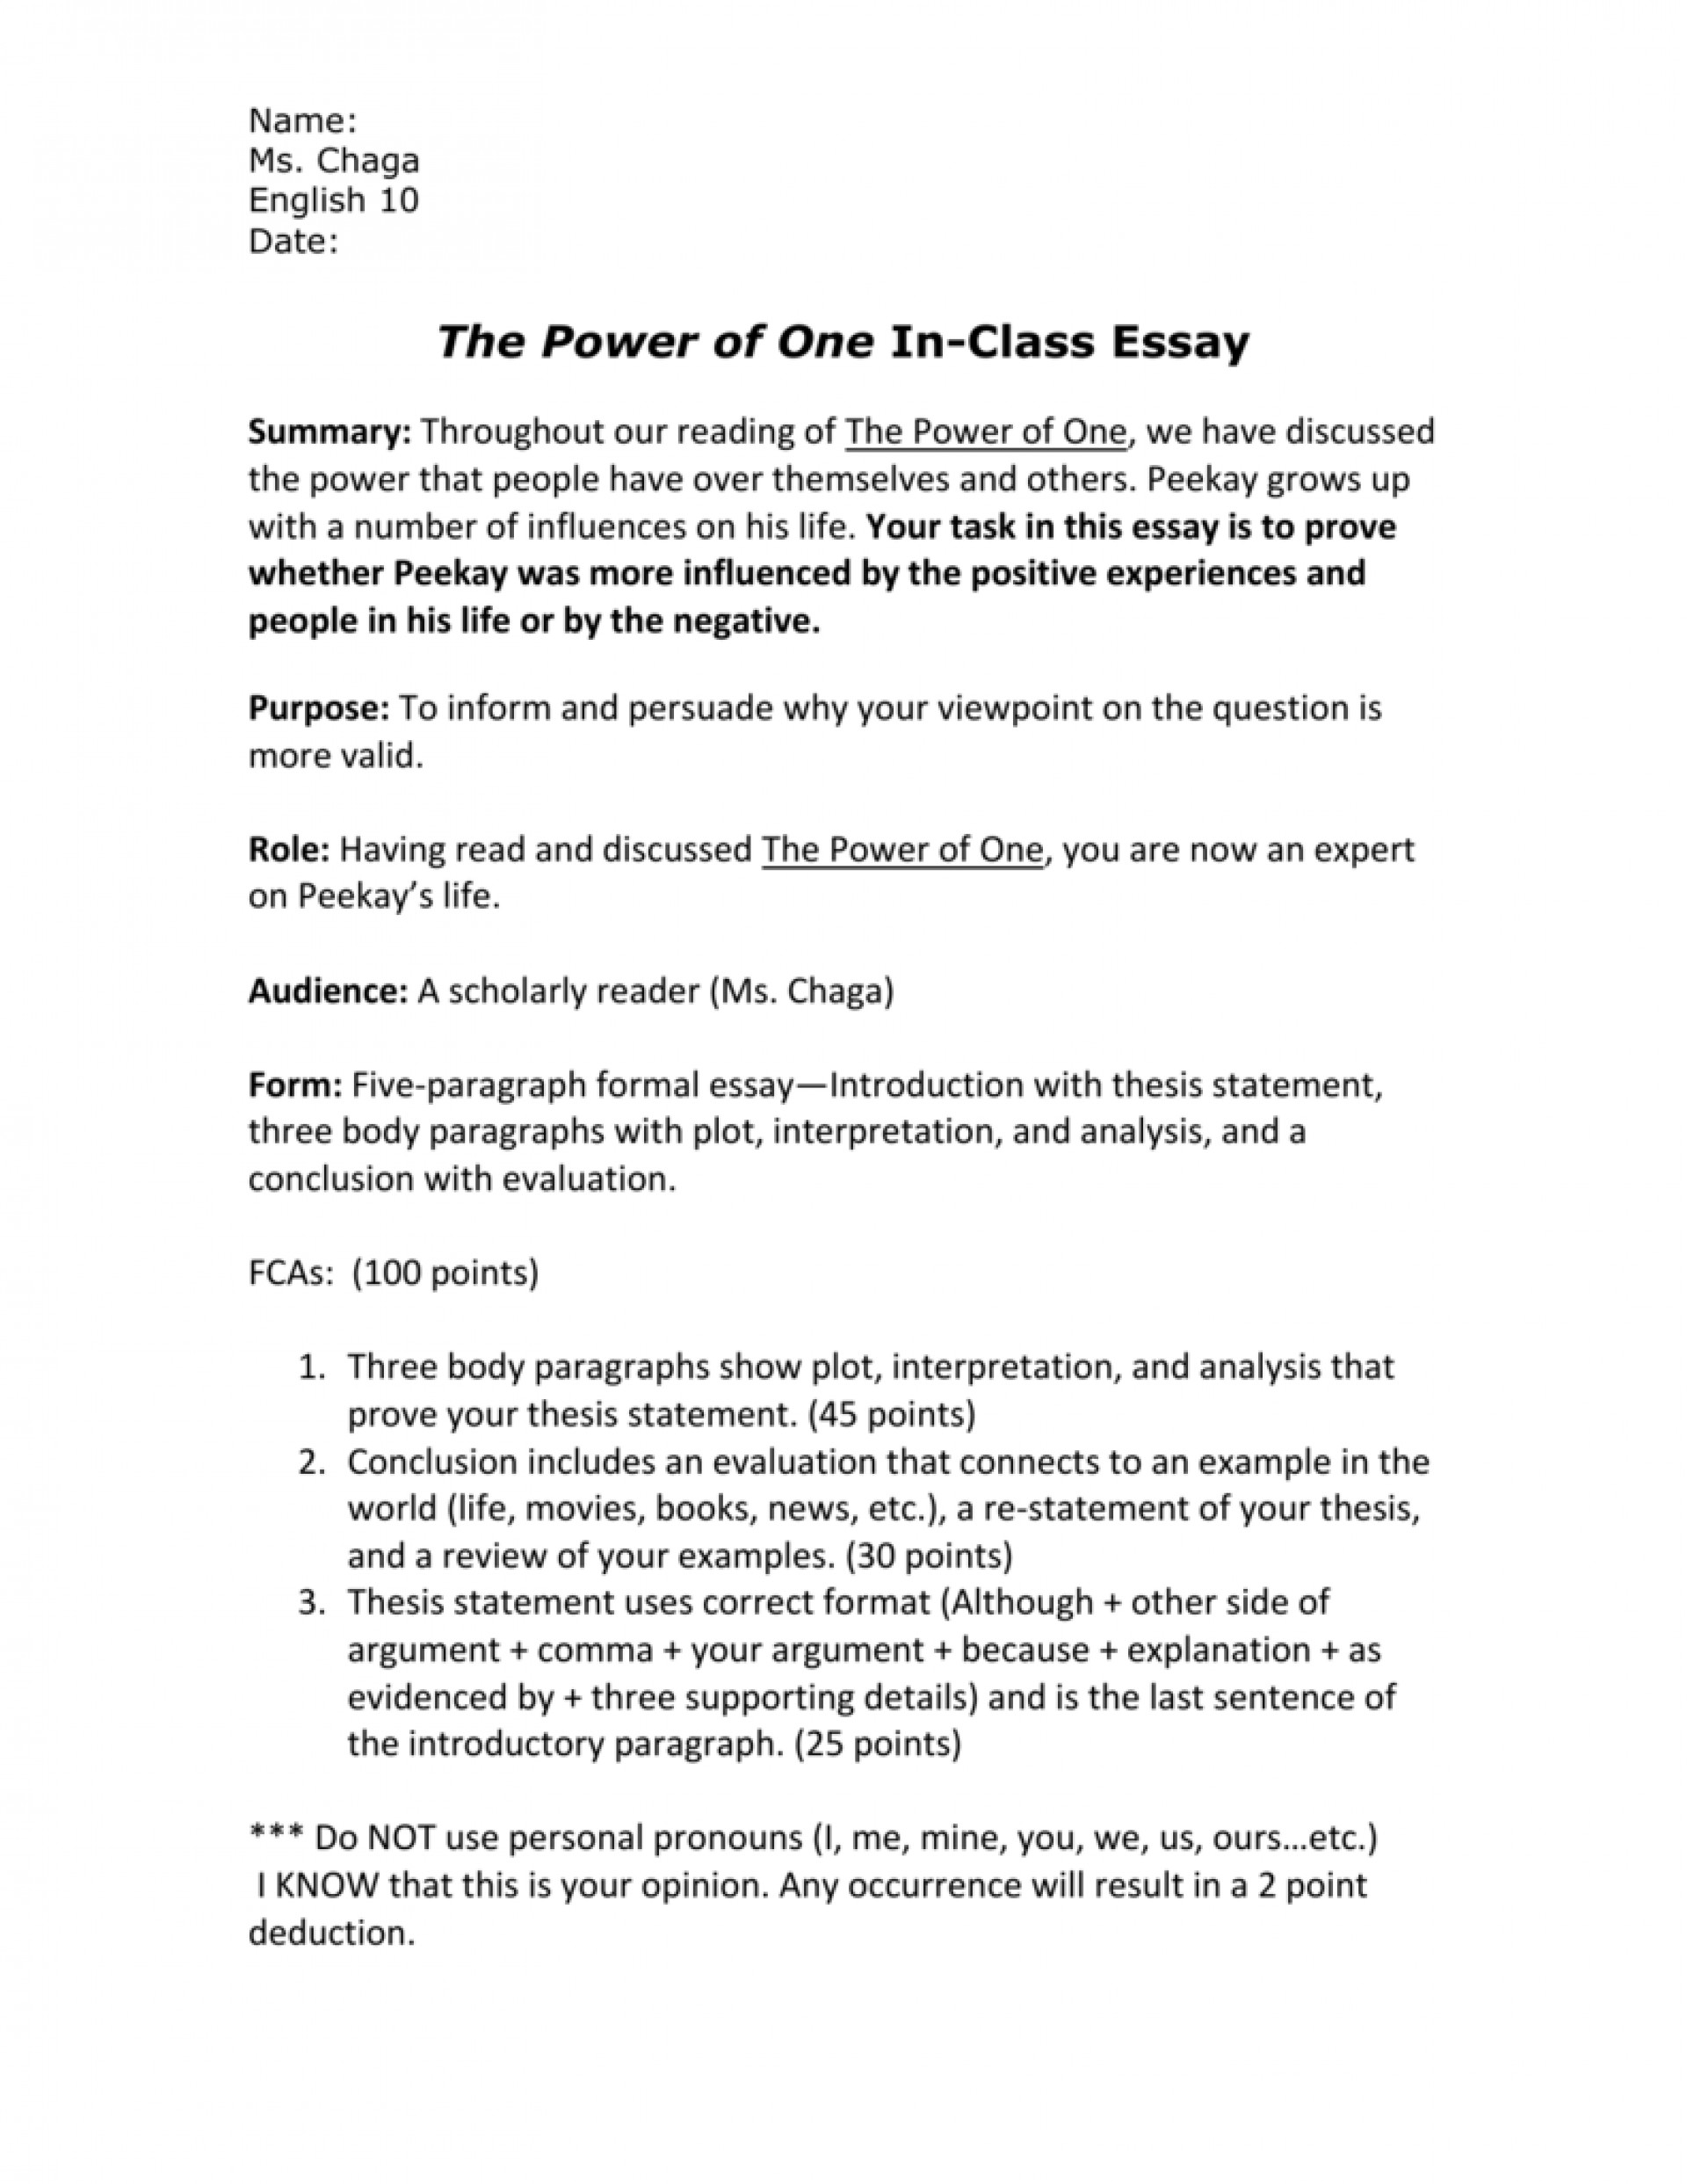 002 Power Essay Example 008012164 1 Shocking Abuse Of Introduction Nuclear Black Topics 1920